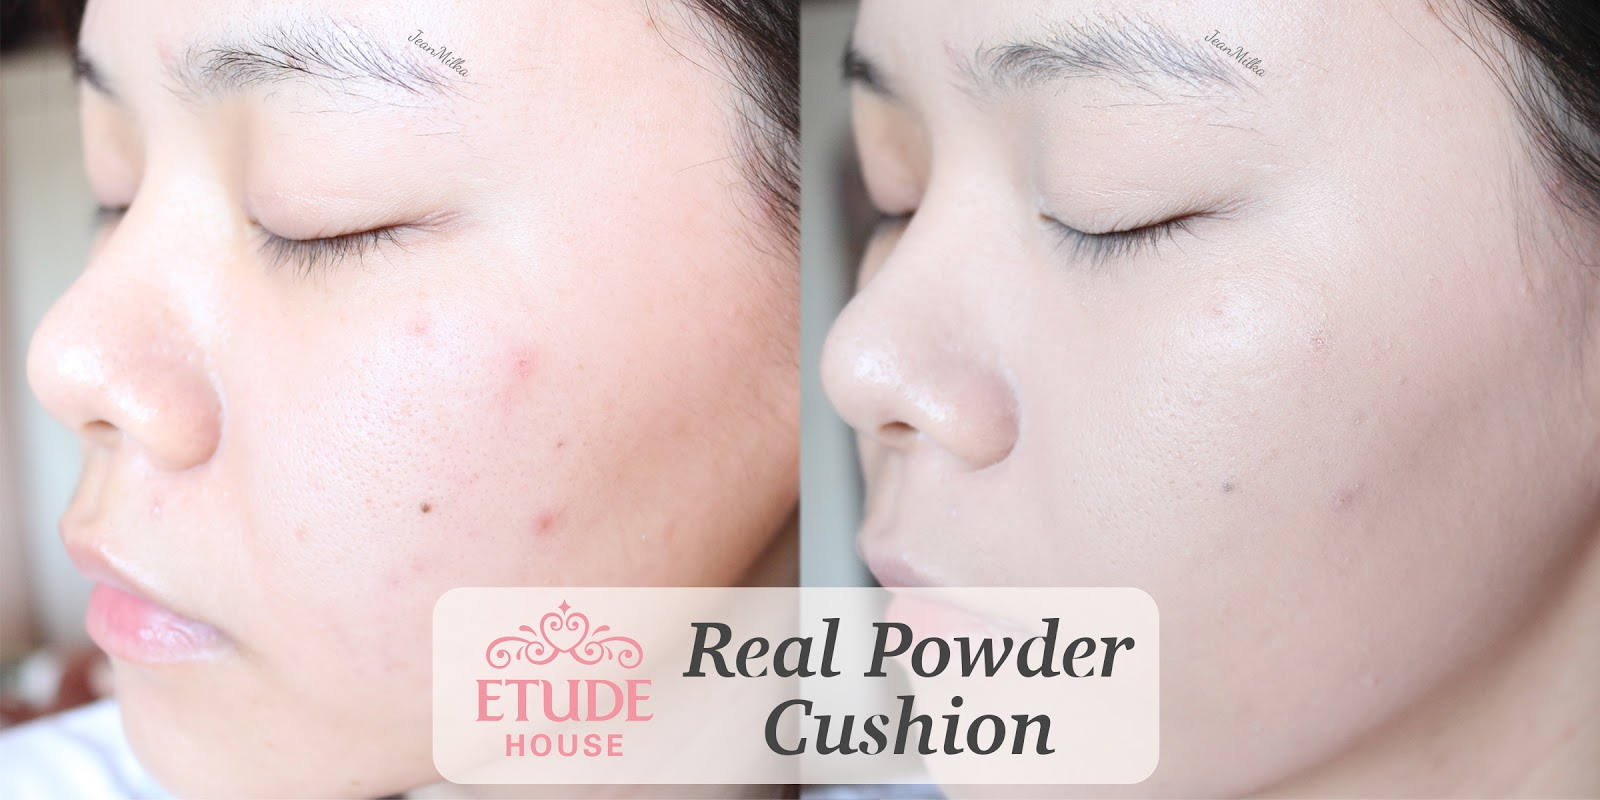 etude house, review etude house, real powder cushion, cushion foundation, oily skin, cushion for oily skin. korean makeup, makeup korea, best cushion for oily skin